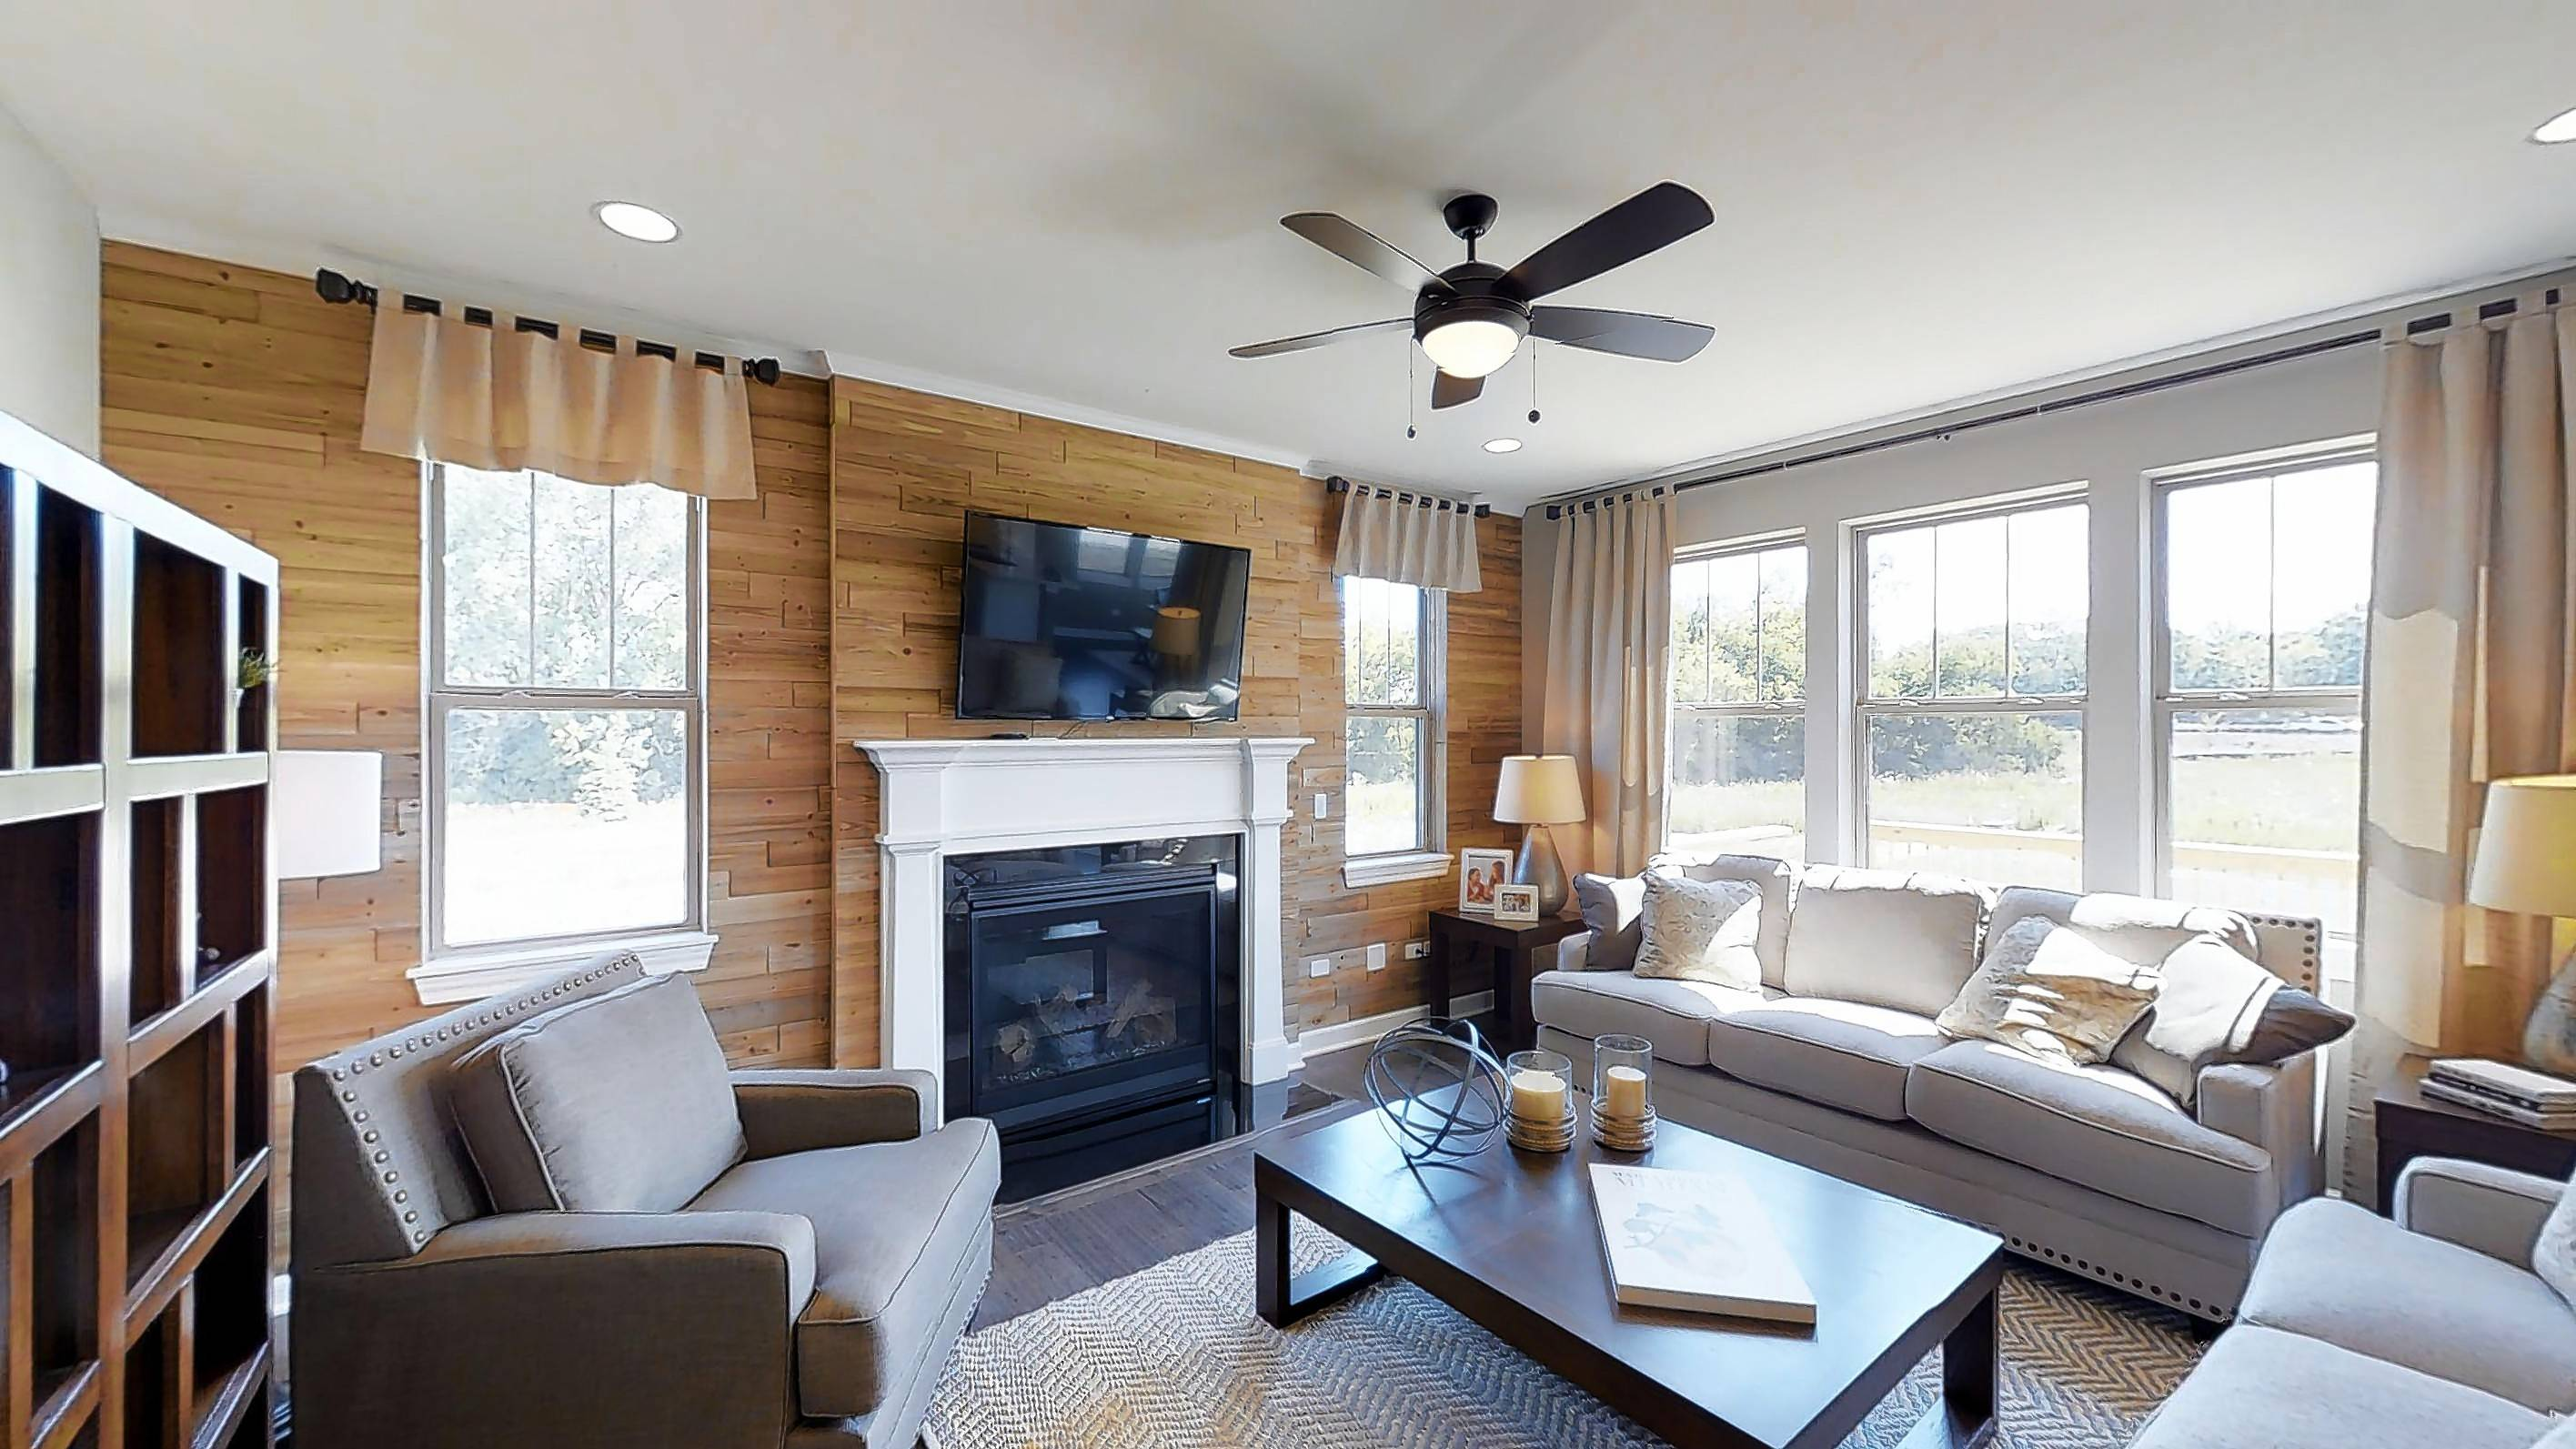 A fireplace against a rustic shiplap wall is the focal point of a family room